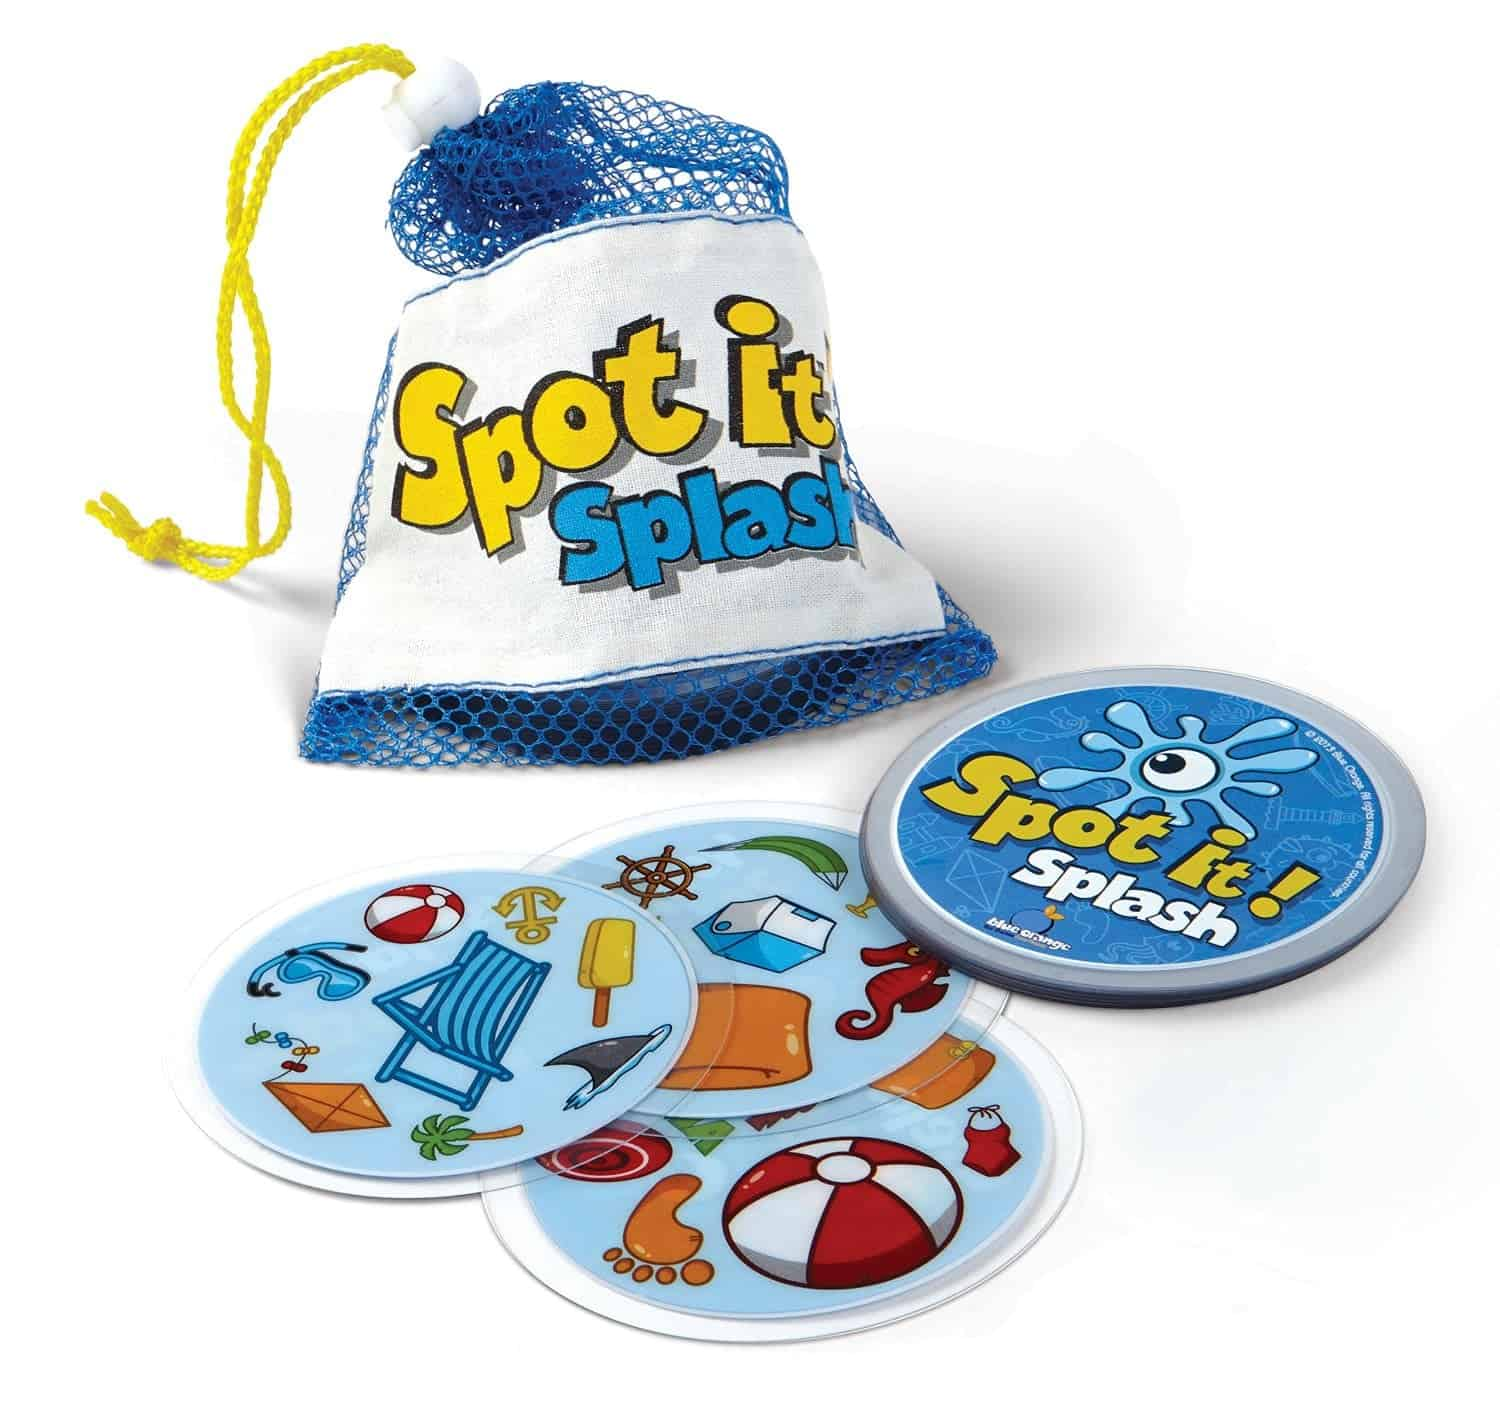 10+ Best Games and Toys for a Fun Day at the Beach: Spot It Splash  www.thepinningmama.com